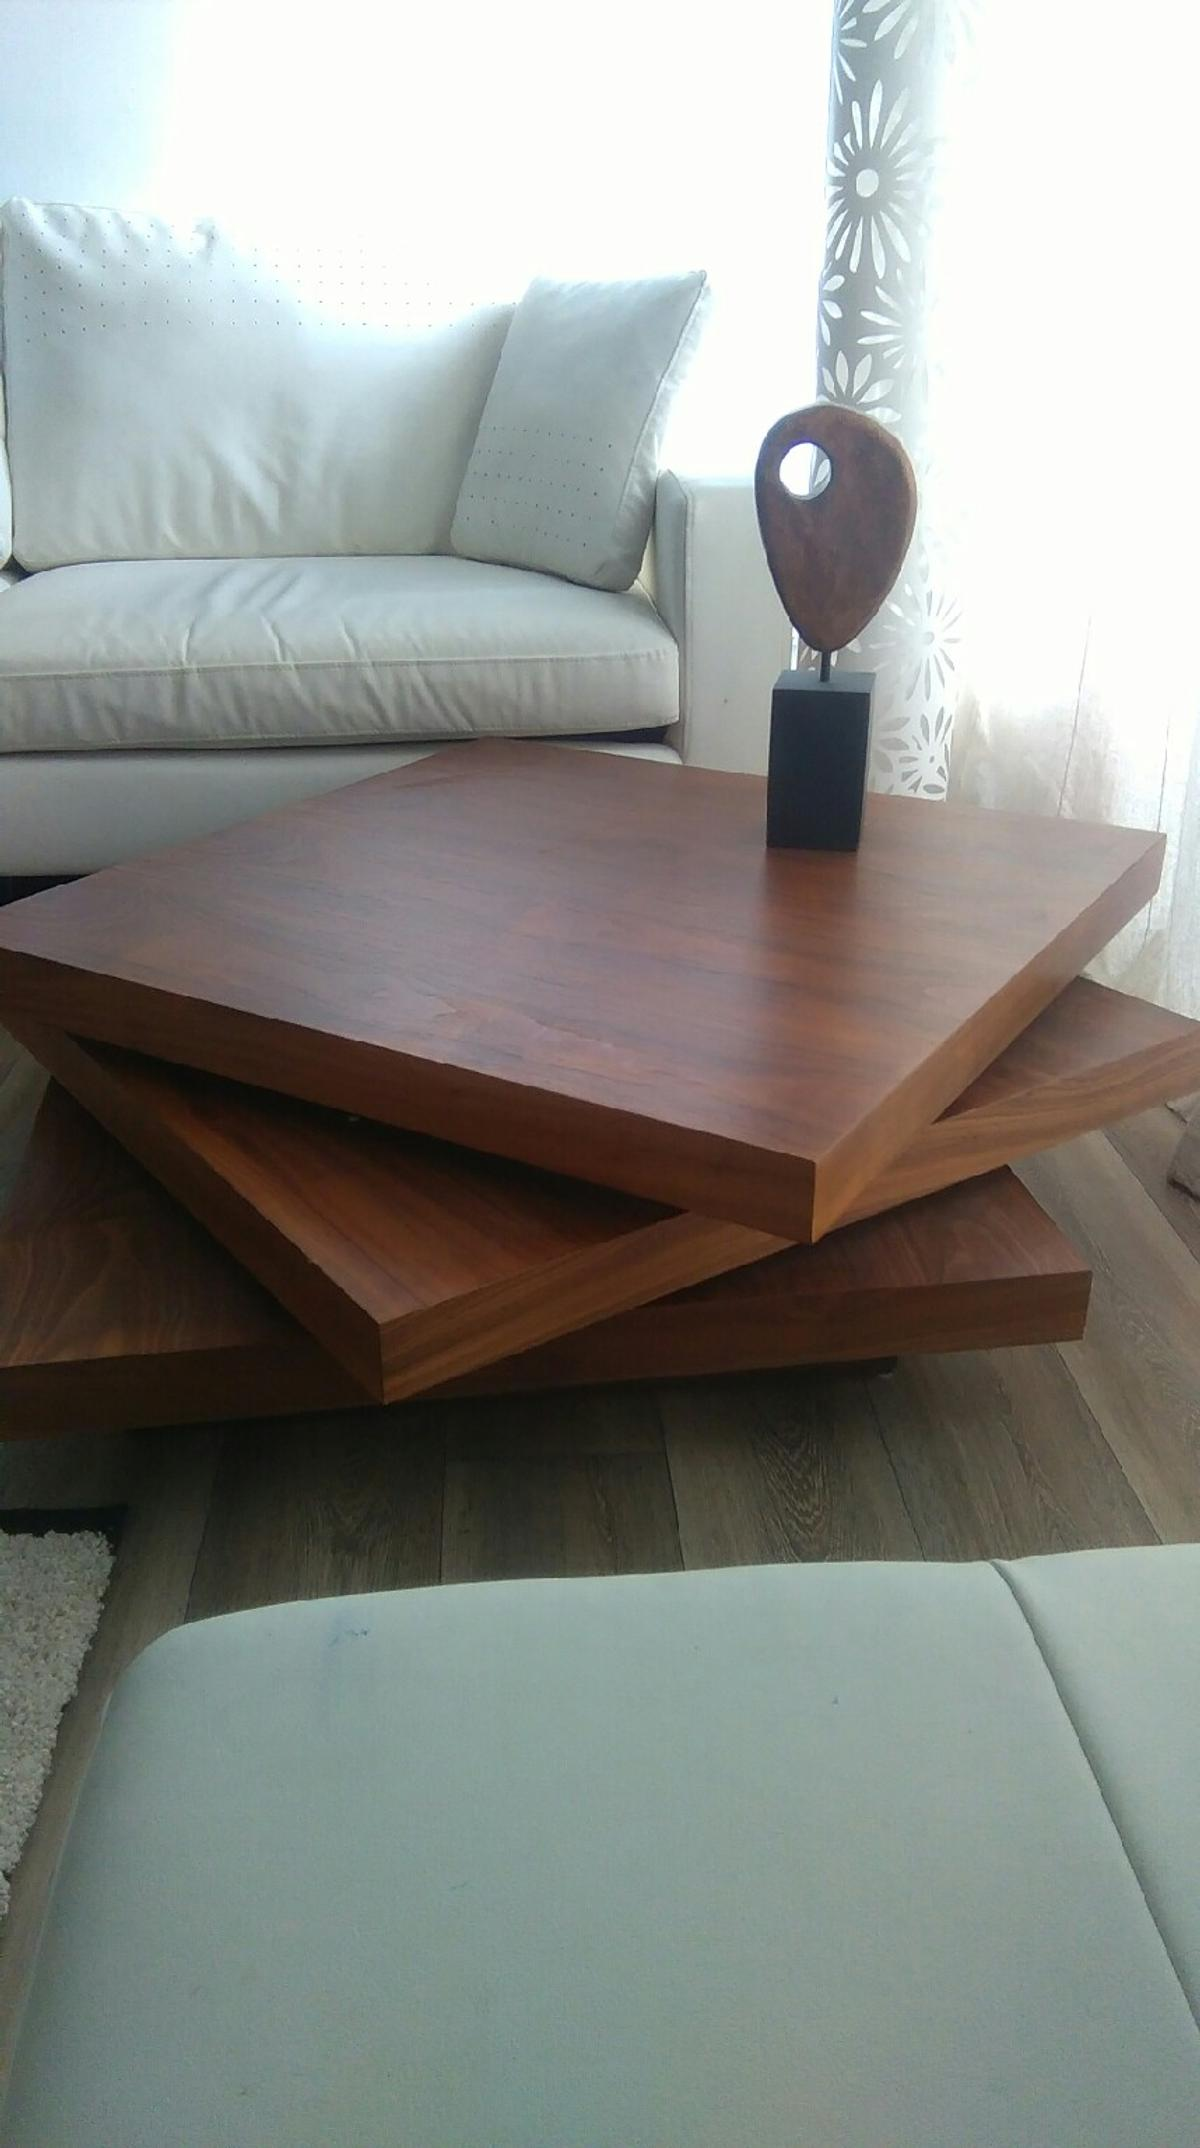 Dwell Coffee Table.New Dwell Triplo Square Swivel Coffee Table